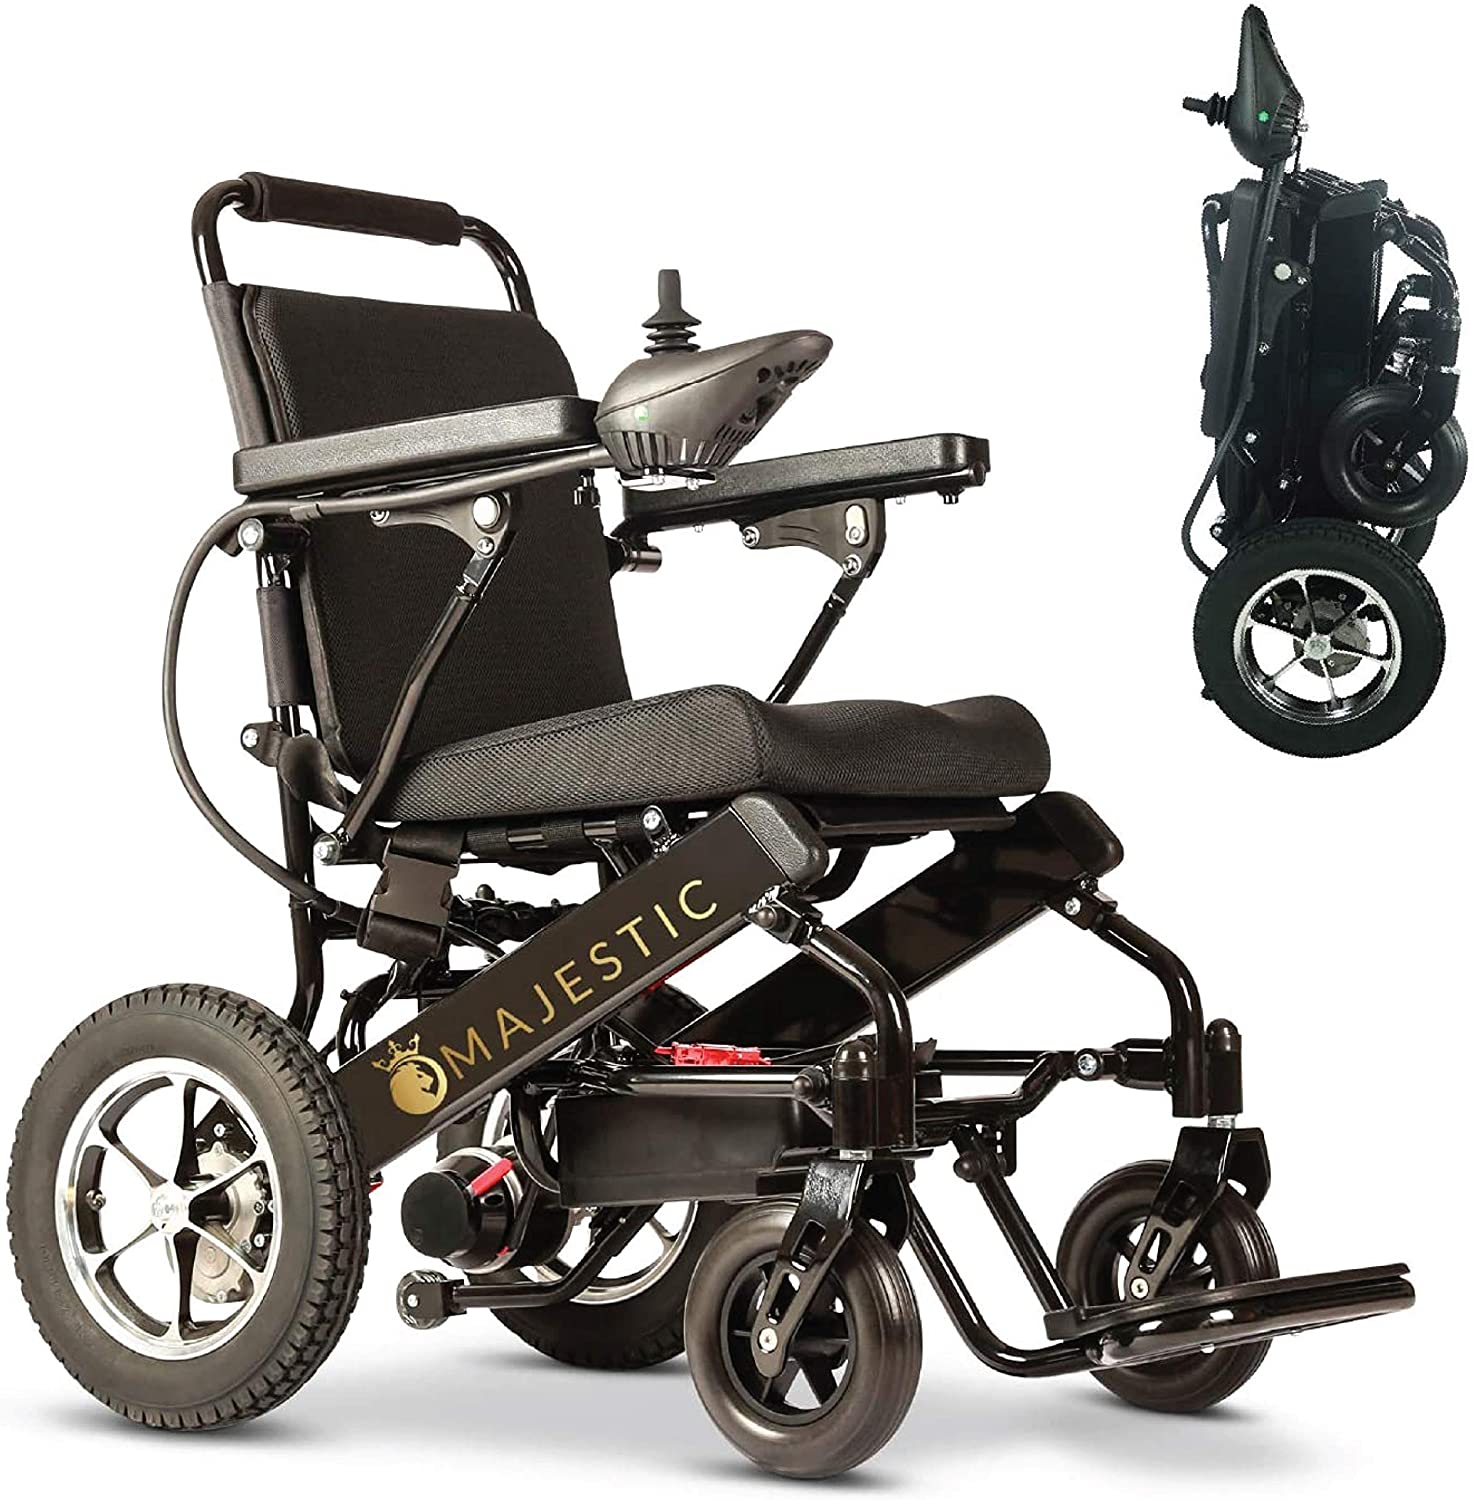 2021 Deluxe Electric Wheelchair with Bluetooth Remote Control